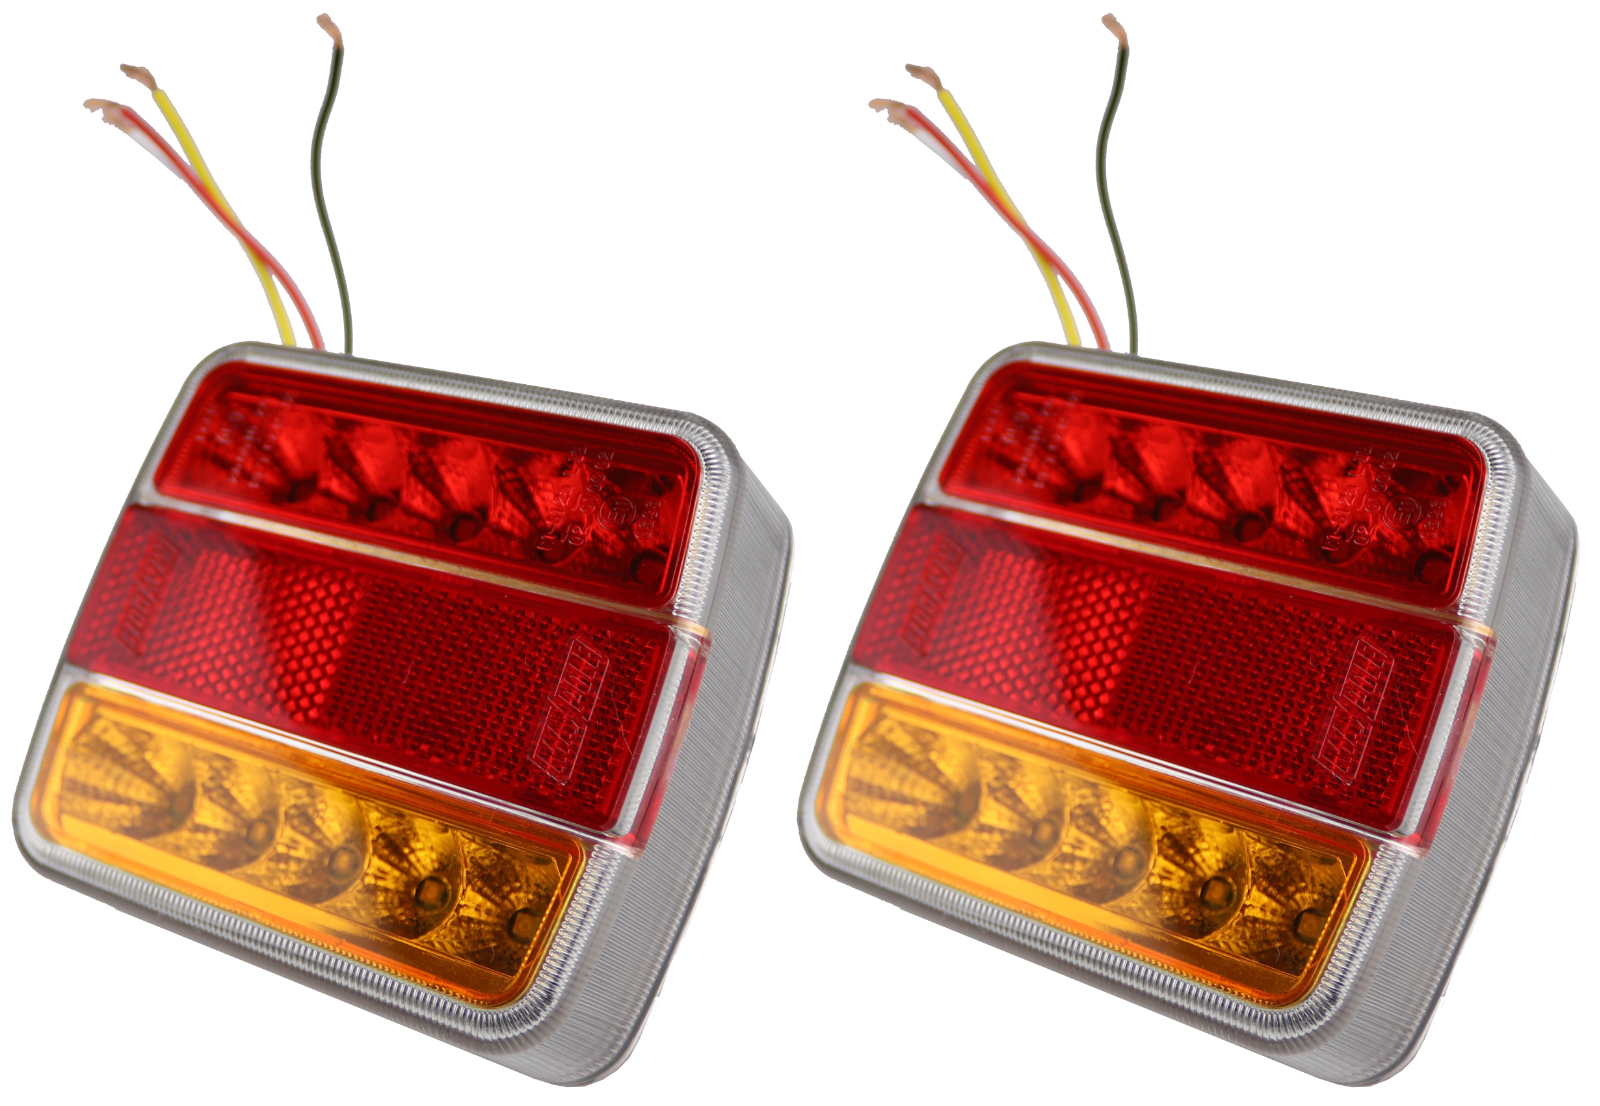 12V SQUARE REAR COMBINATION TRAILER BOARD TAIL LAMP LIGHT WITH NUMBER PLATE LAMP